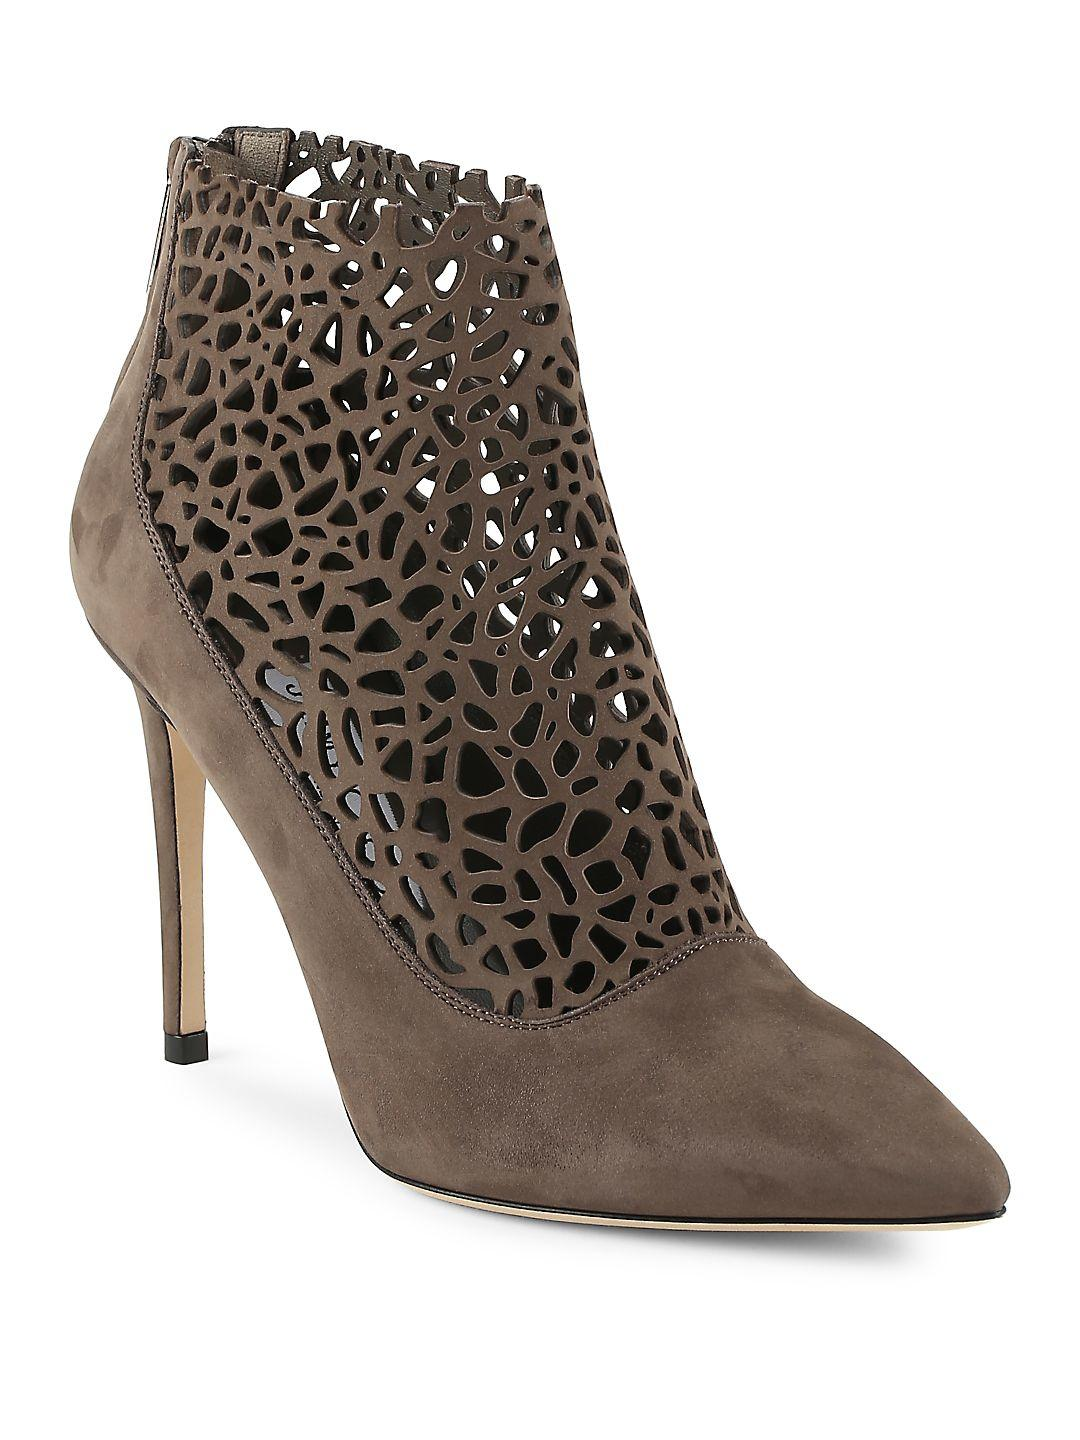 Jimmy Choo Point Toe Leather Ankle Boots